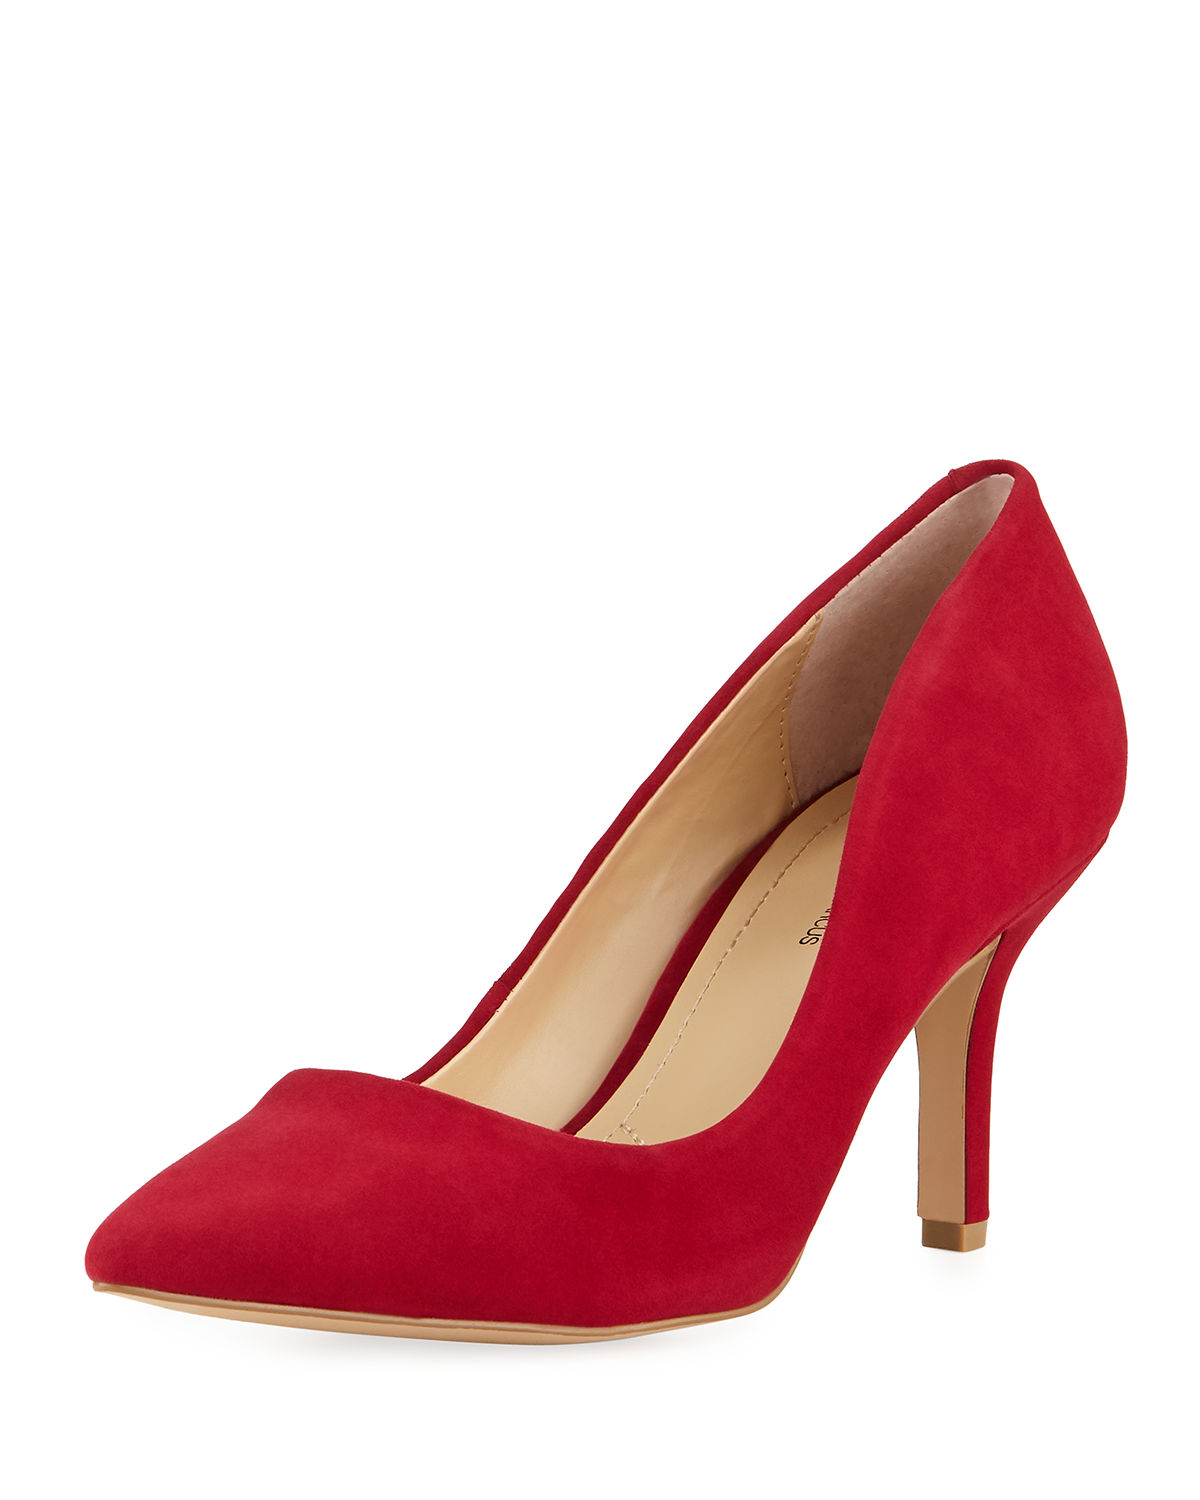 Sandra Pointed-Toe Pump